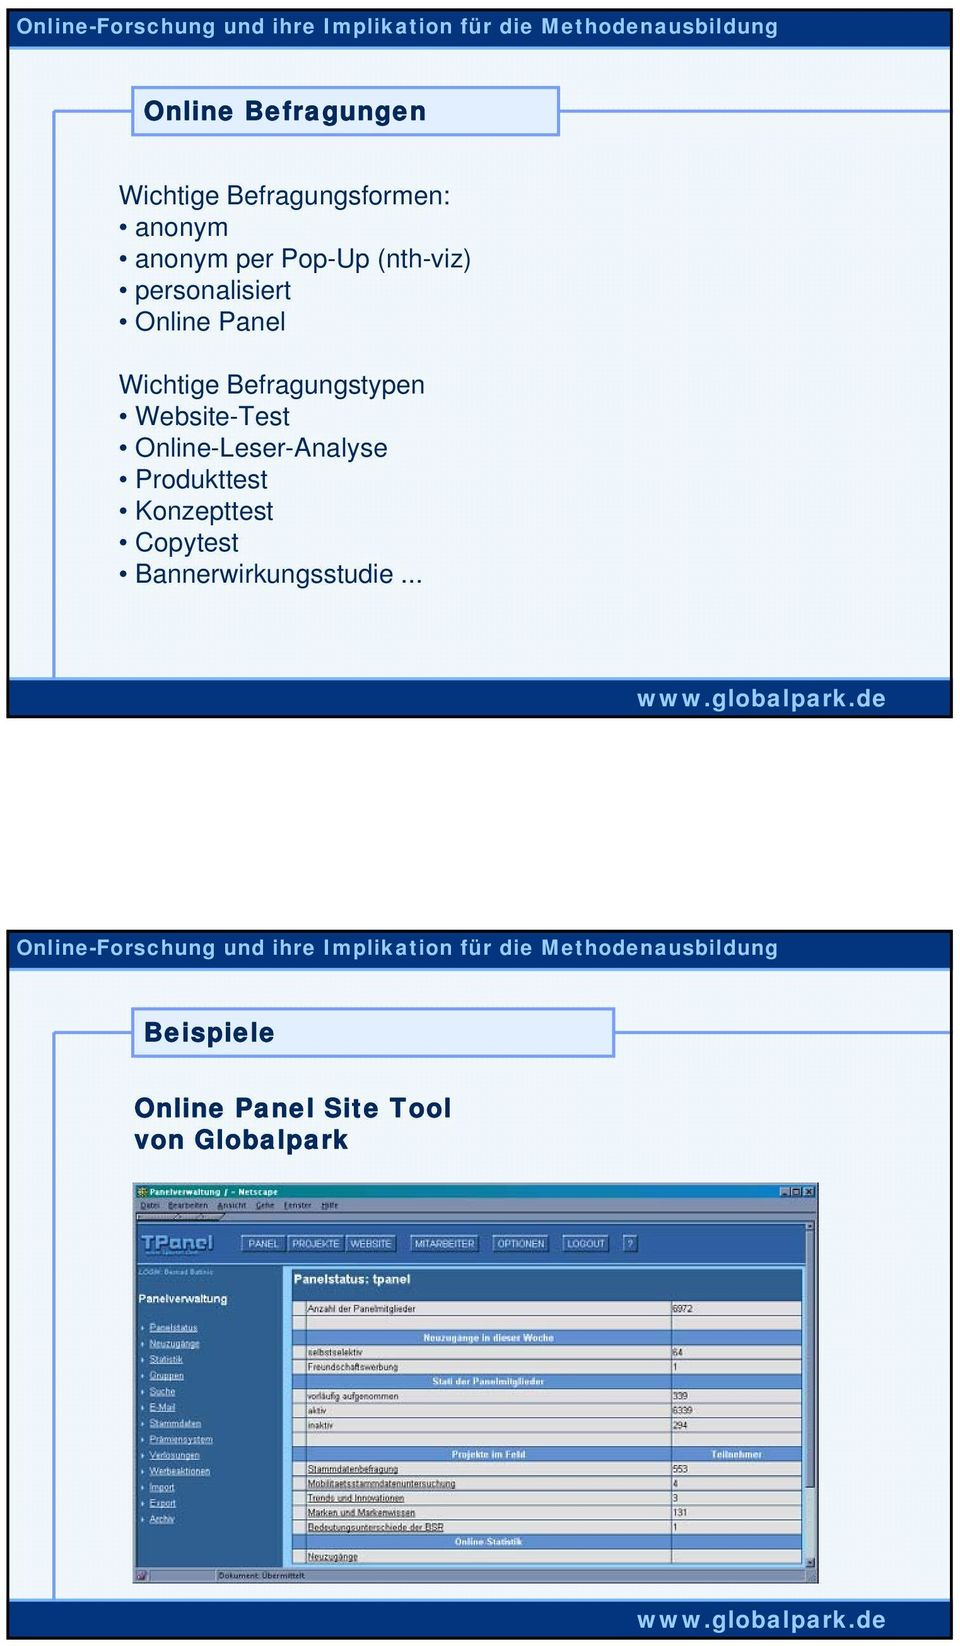 Befragungstypen Website-Test Online-Leser-Analyse Produkttest